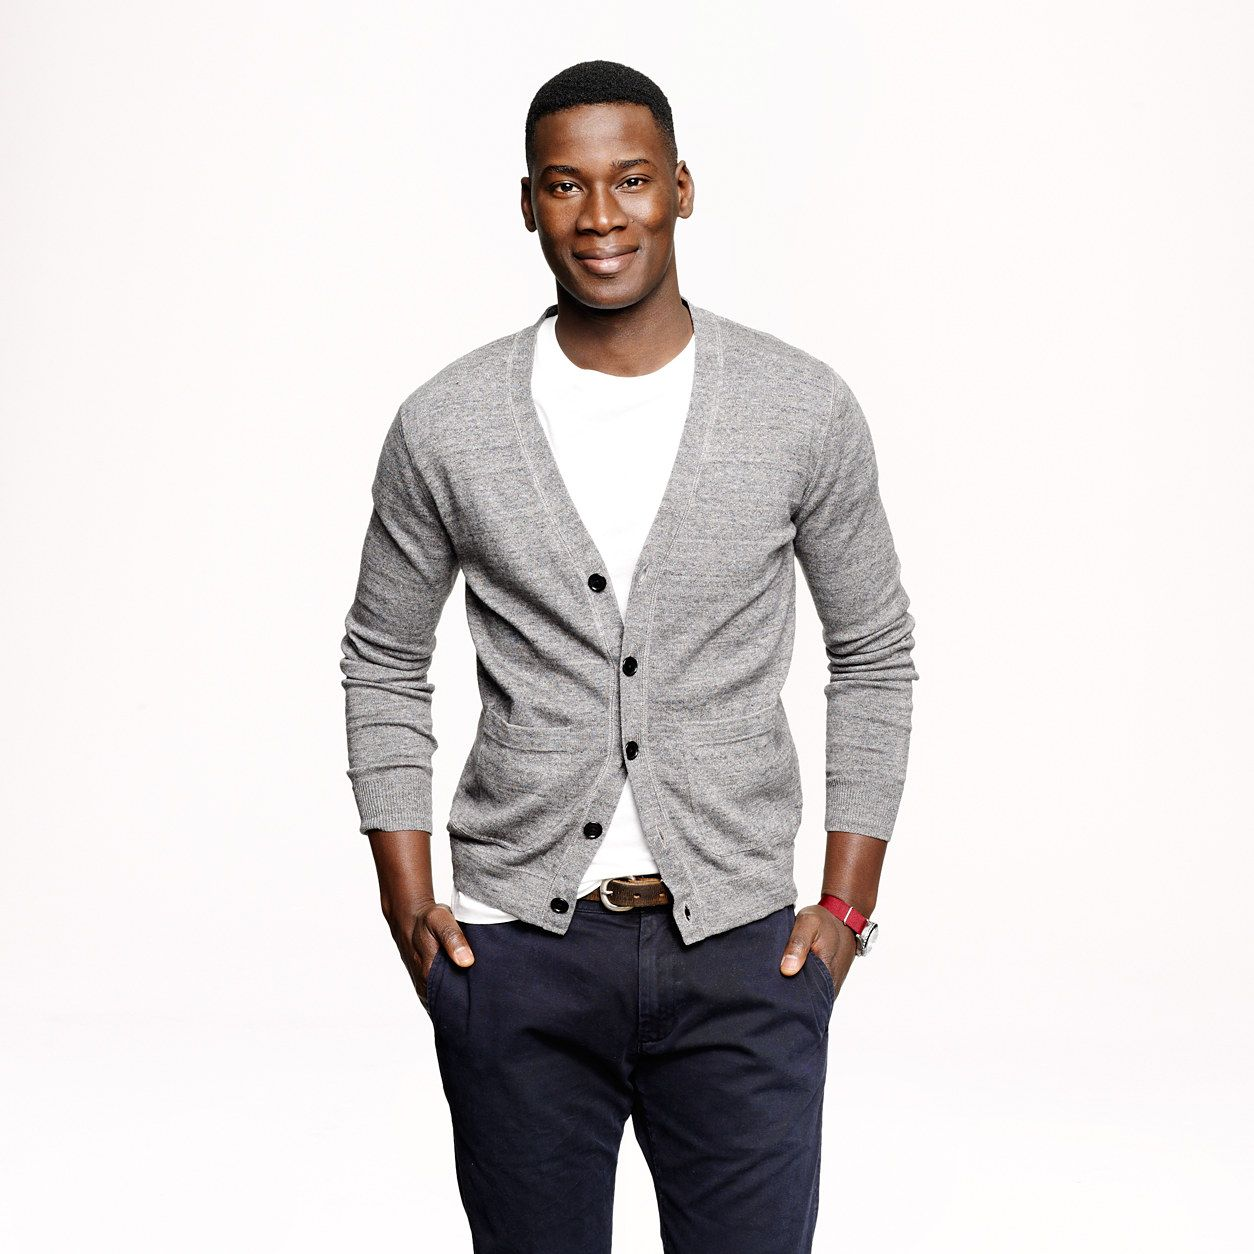 Cotton cardigan sweater : cotton | J.Crew | My Virtual Wardrobe ...